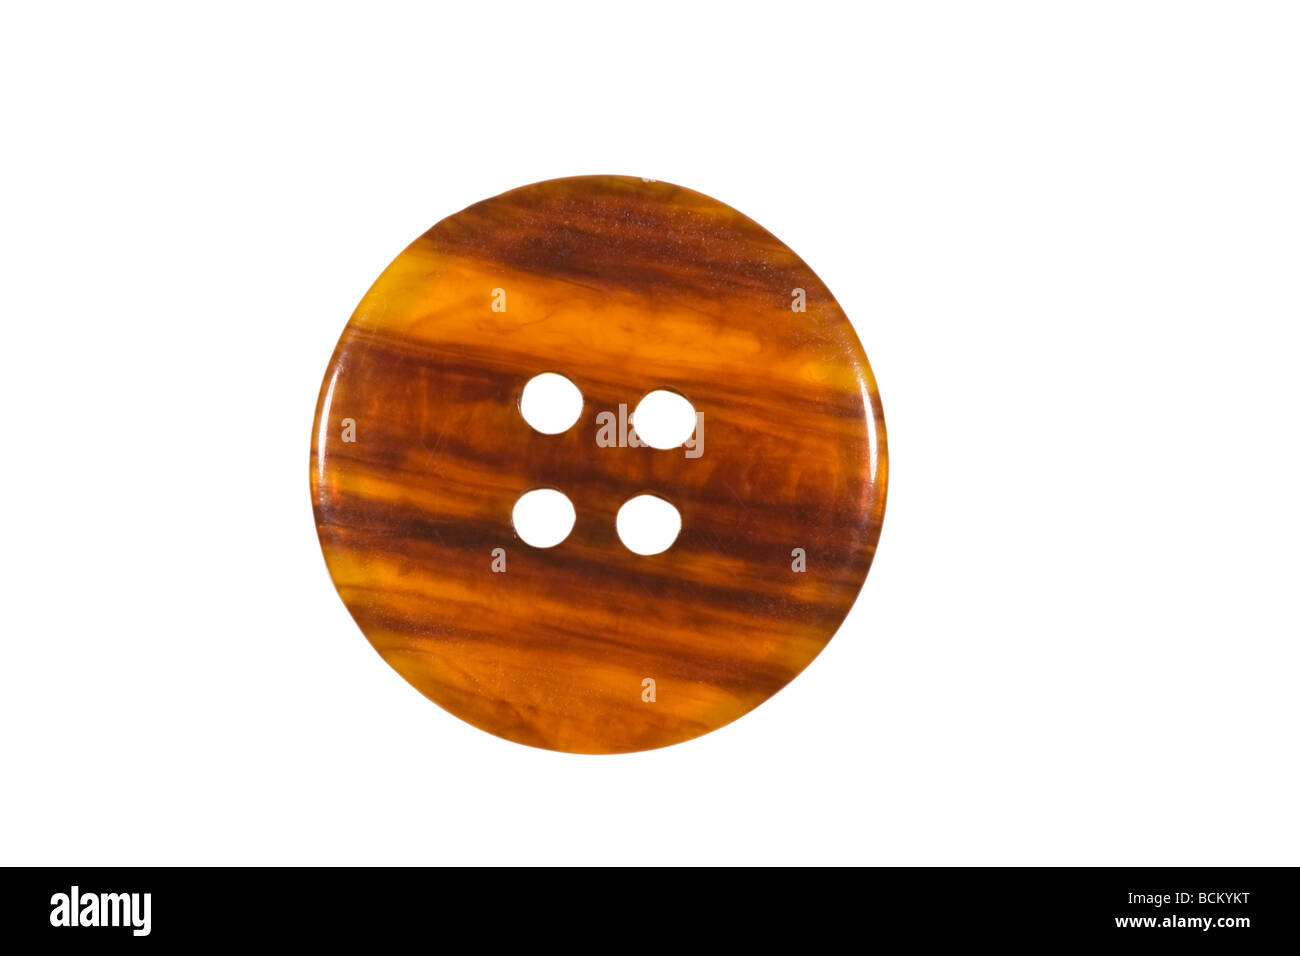 Orange brown wood coloured button - Stock Image